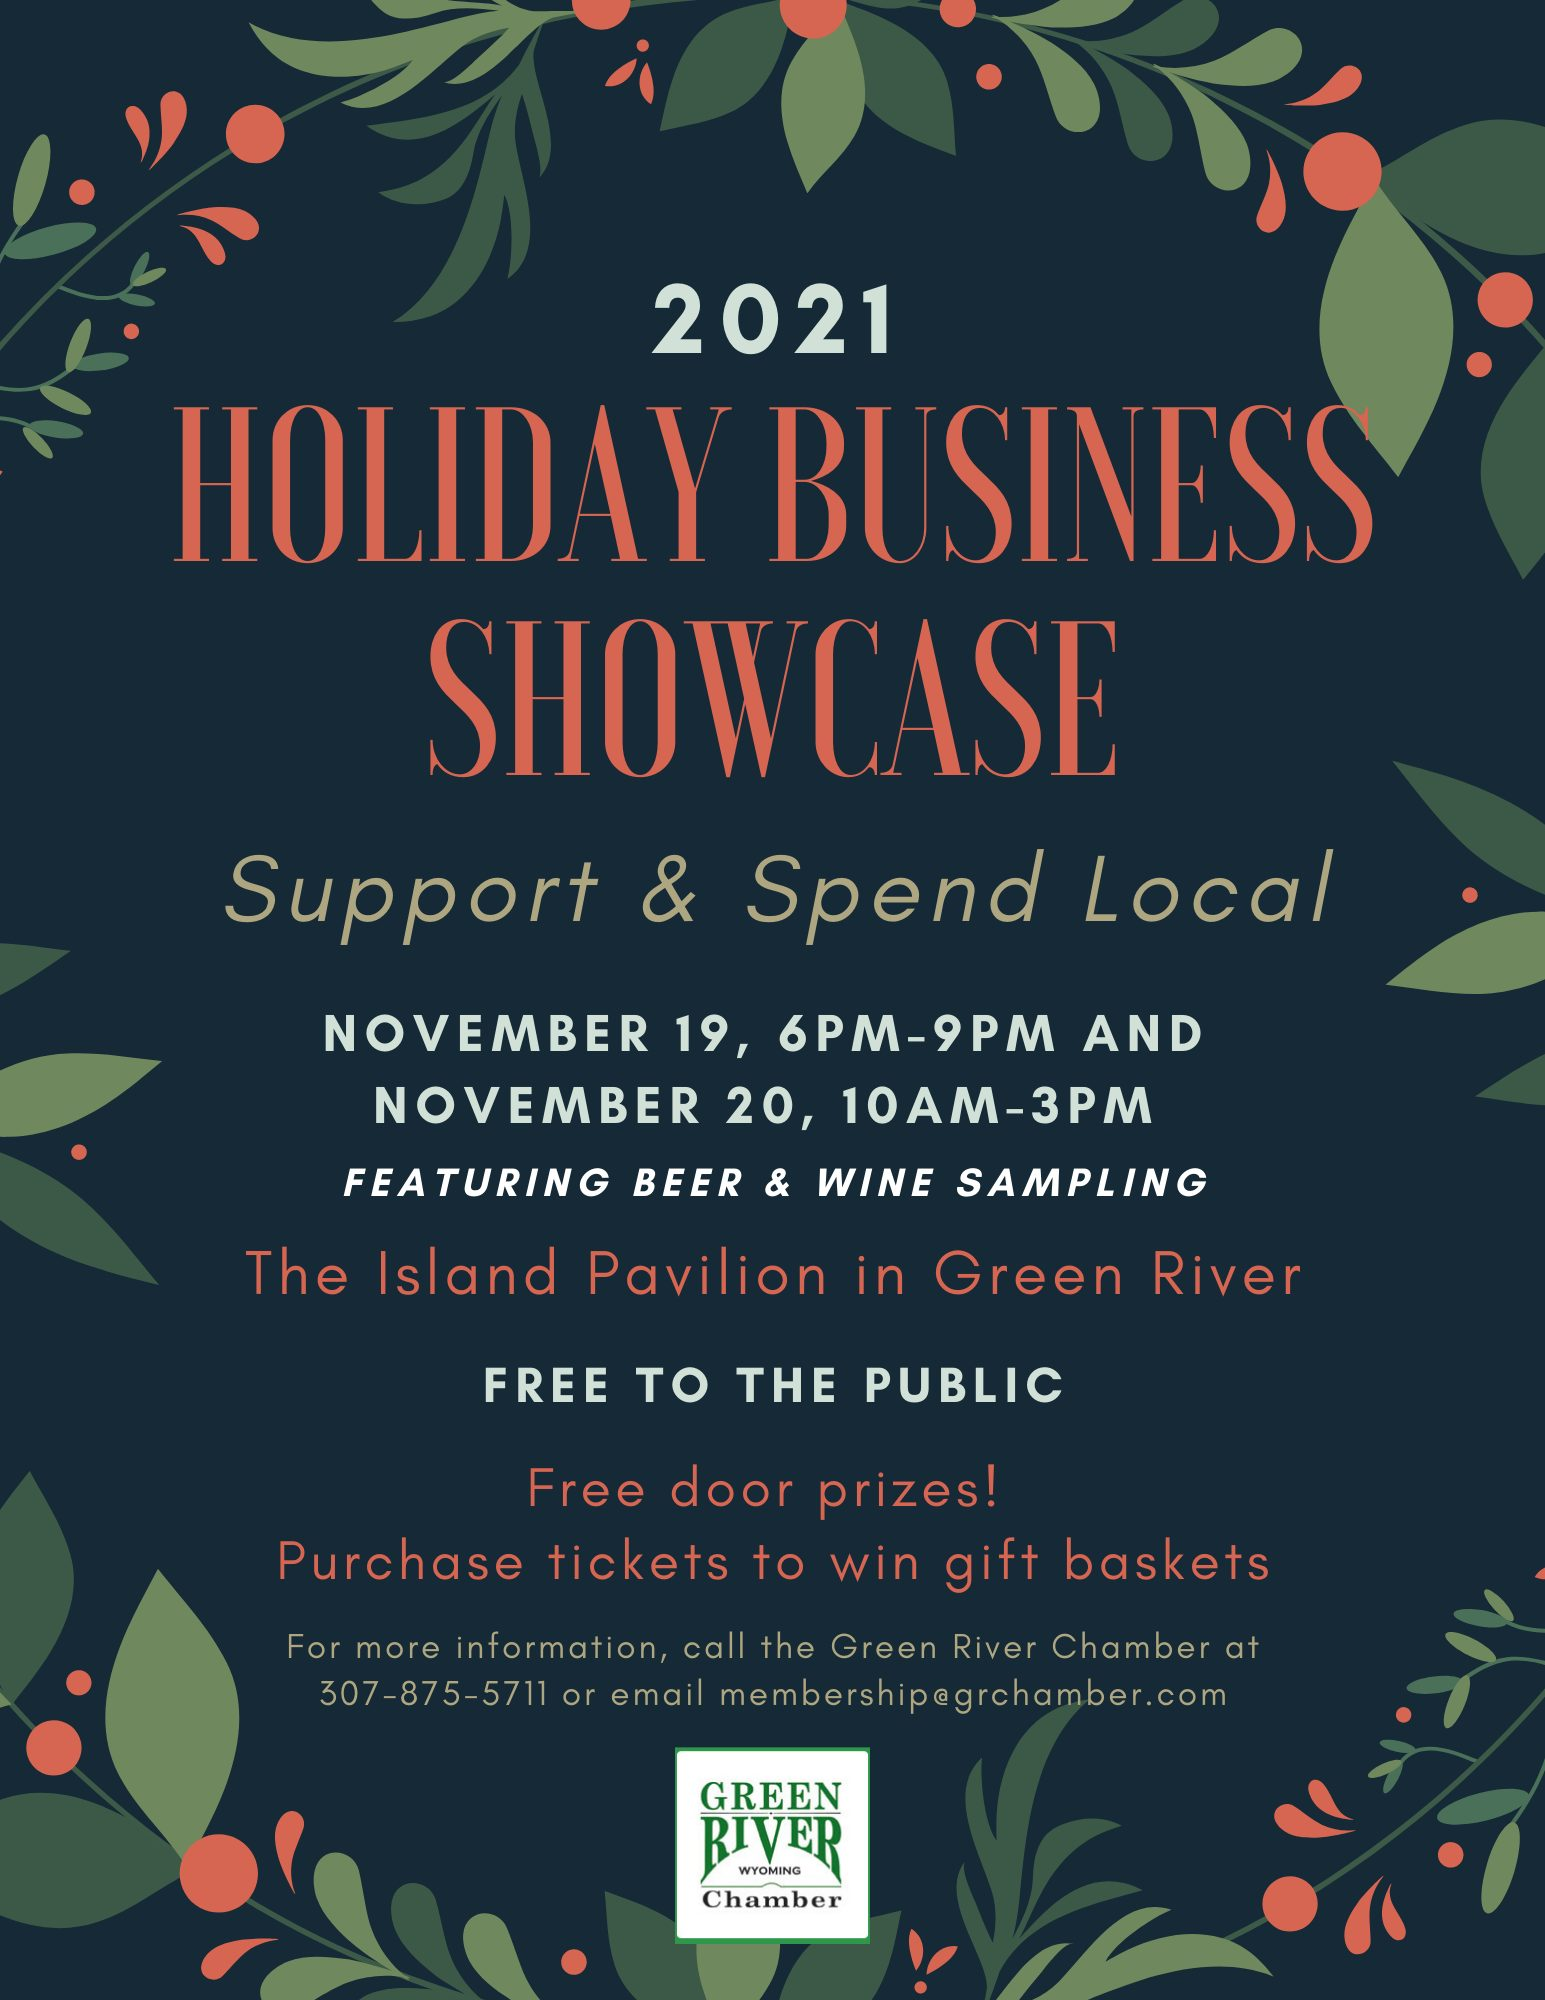 Holiday Business Showcase flyer PNG